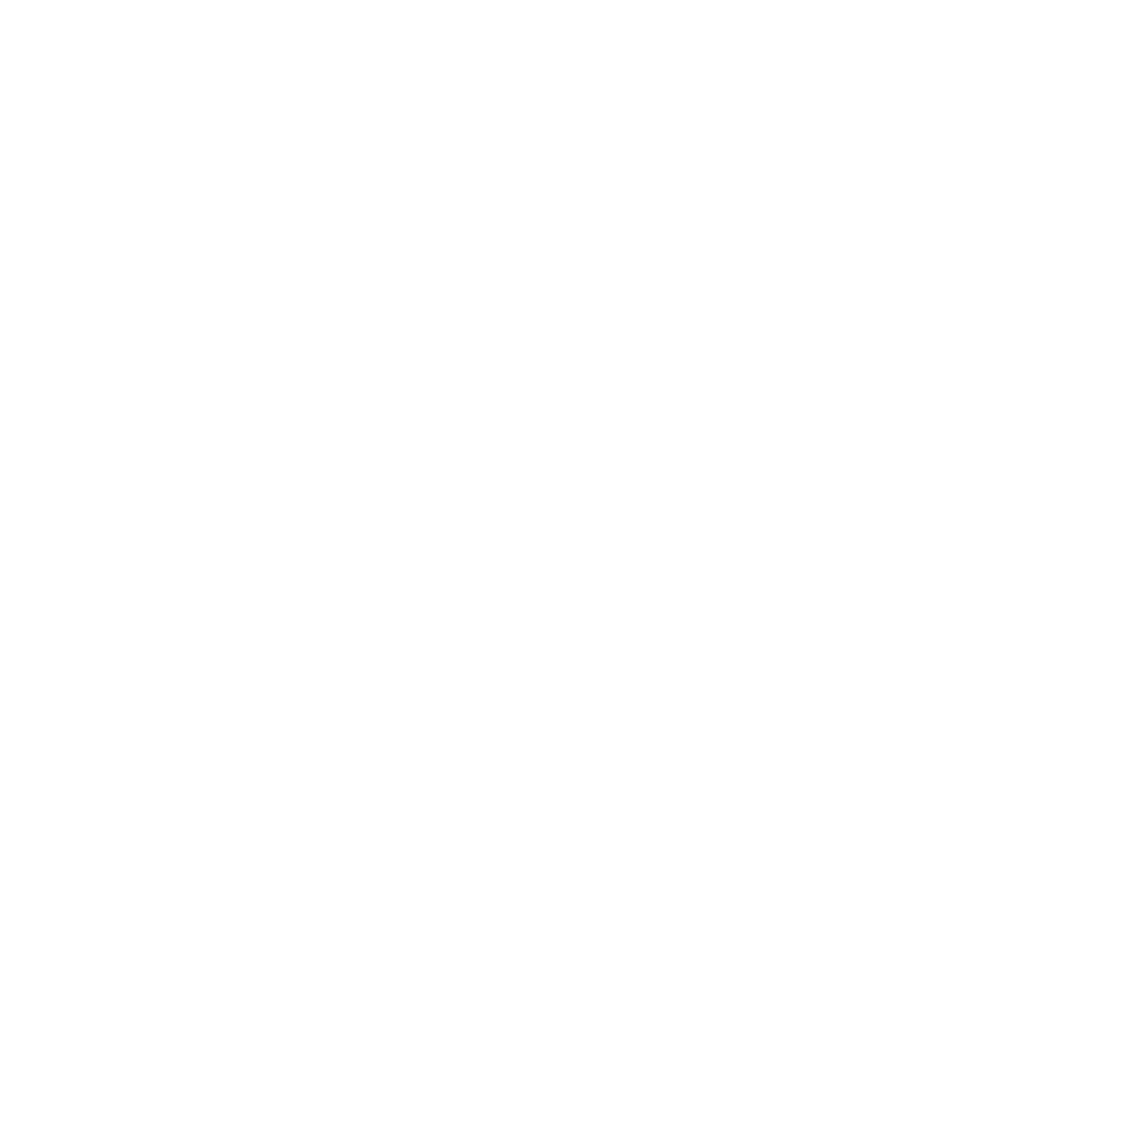 BigCommerce Development Icon for the Best Web Design in Nashville TN, Horton Group who also provides Nashville SEO, Inbound Marketing and Web Support.